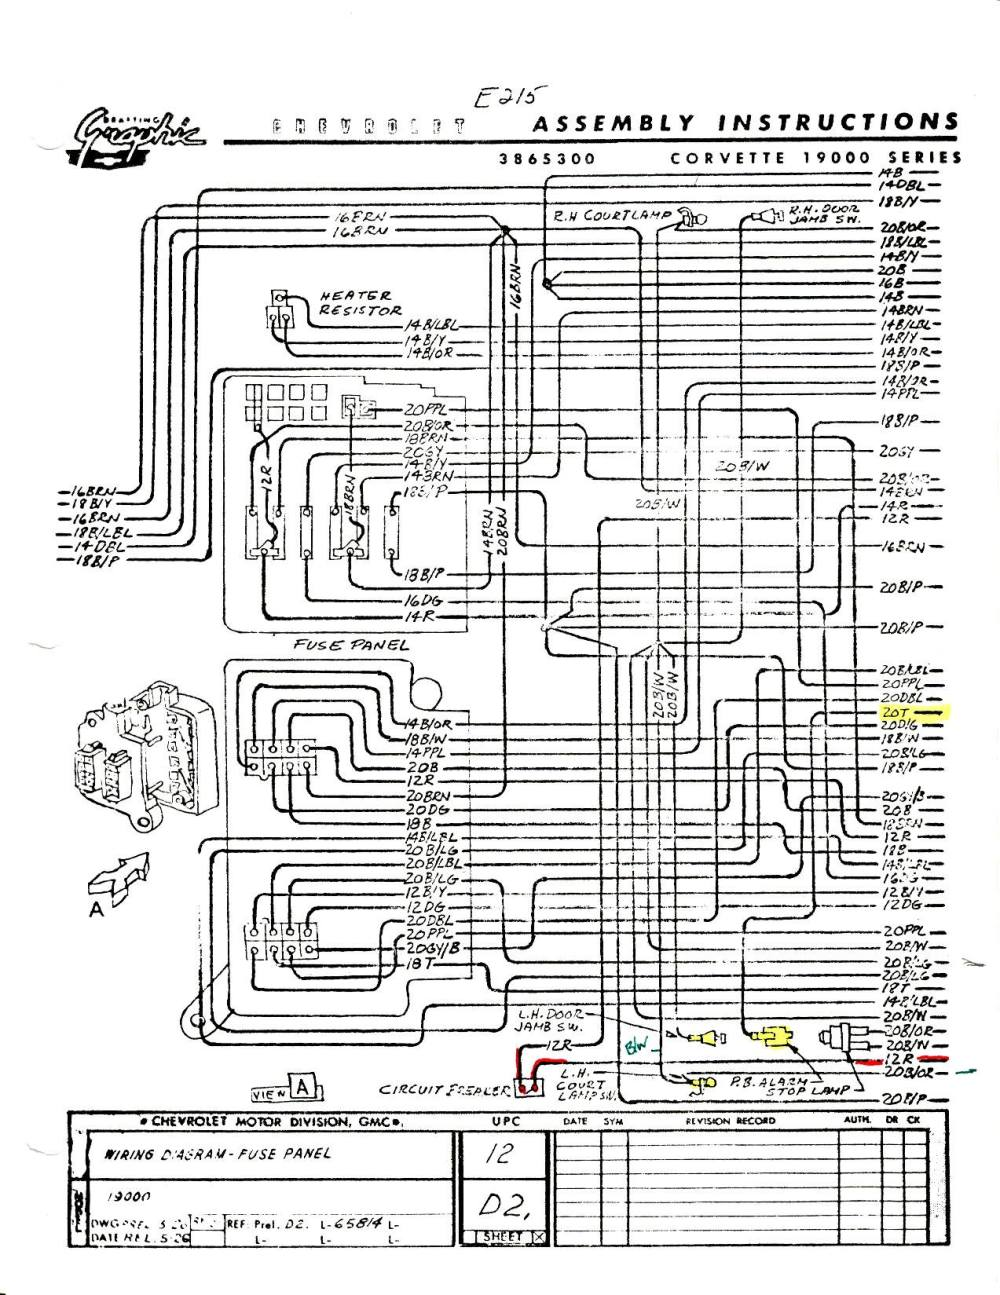 medium resolution of 1965 chevy corvette wiring diagram enthusiast wiring diagrams u2022 rh rasalibre co 65 corvette wiring diagram